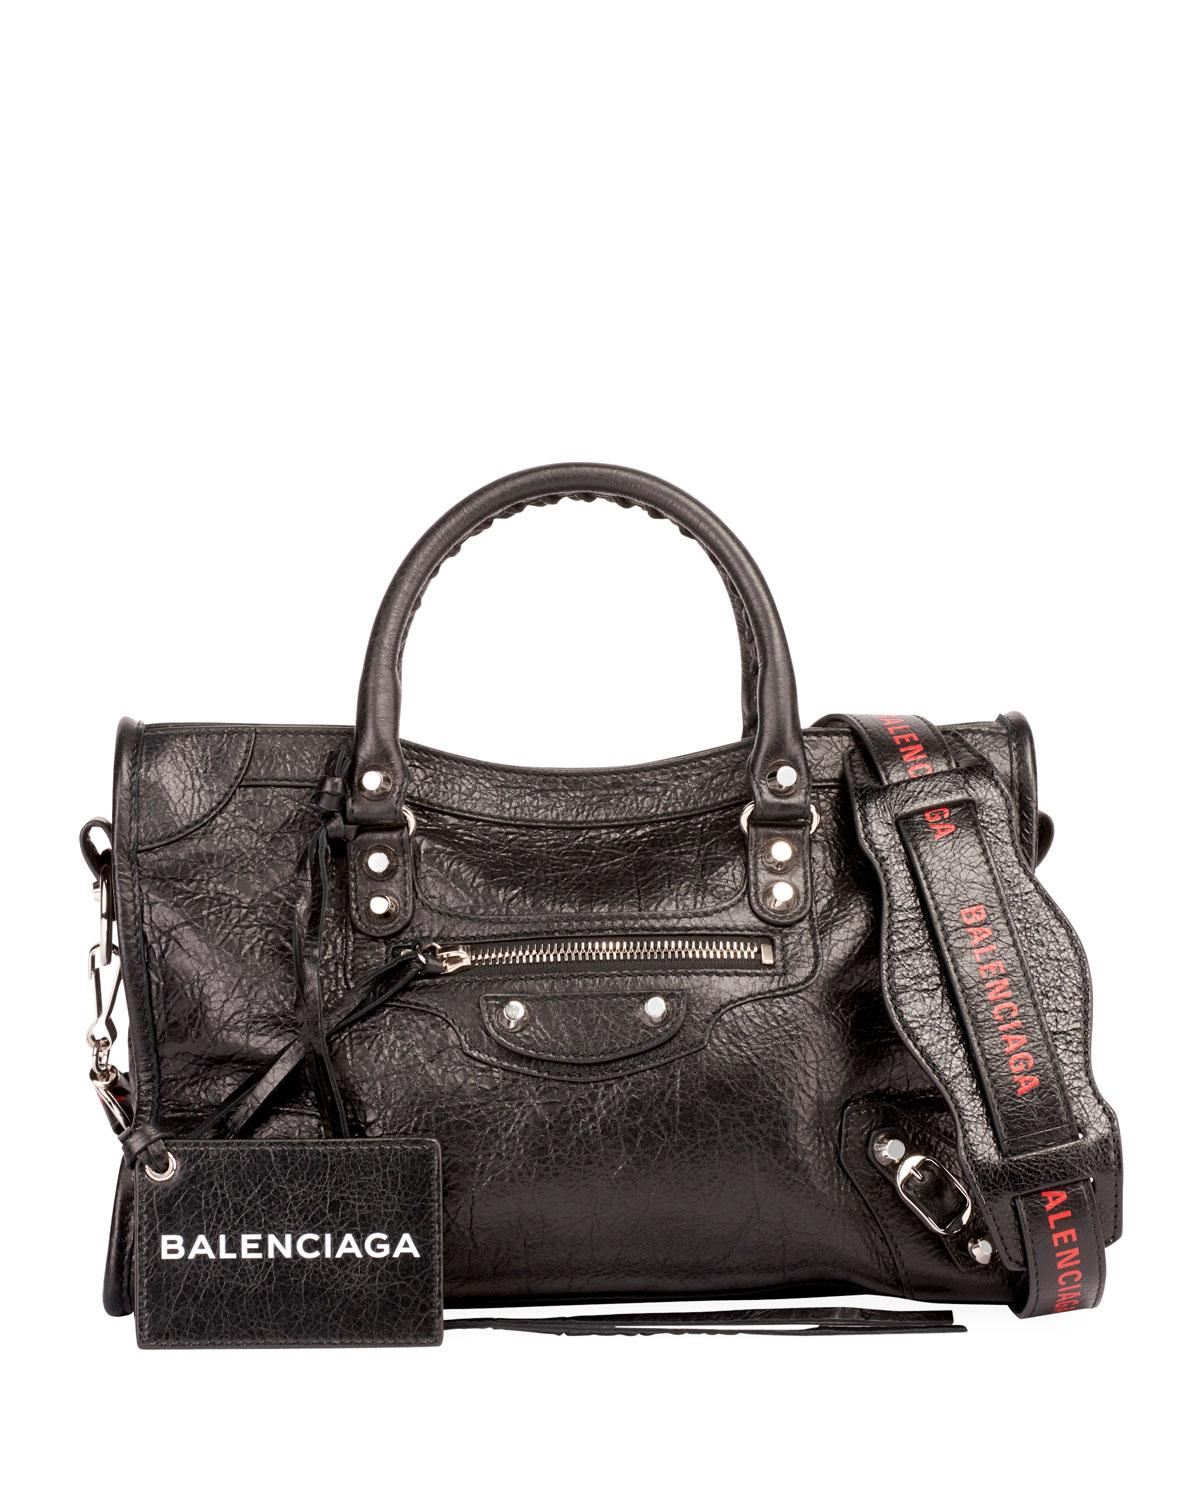 7322c2c6d4 Balenciaga Classic City Small Leather Tote Bag With Logo Strap In Black Red